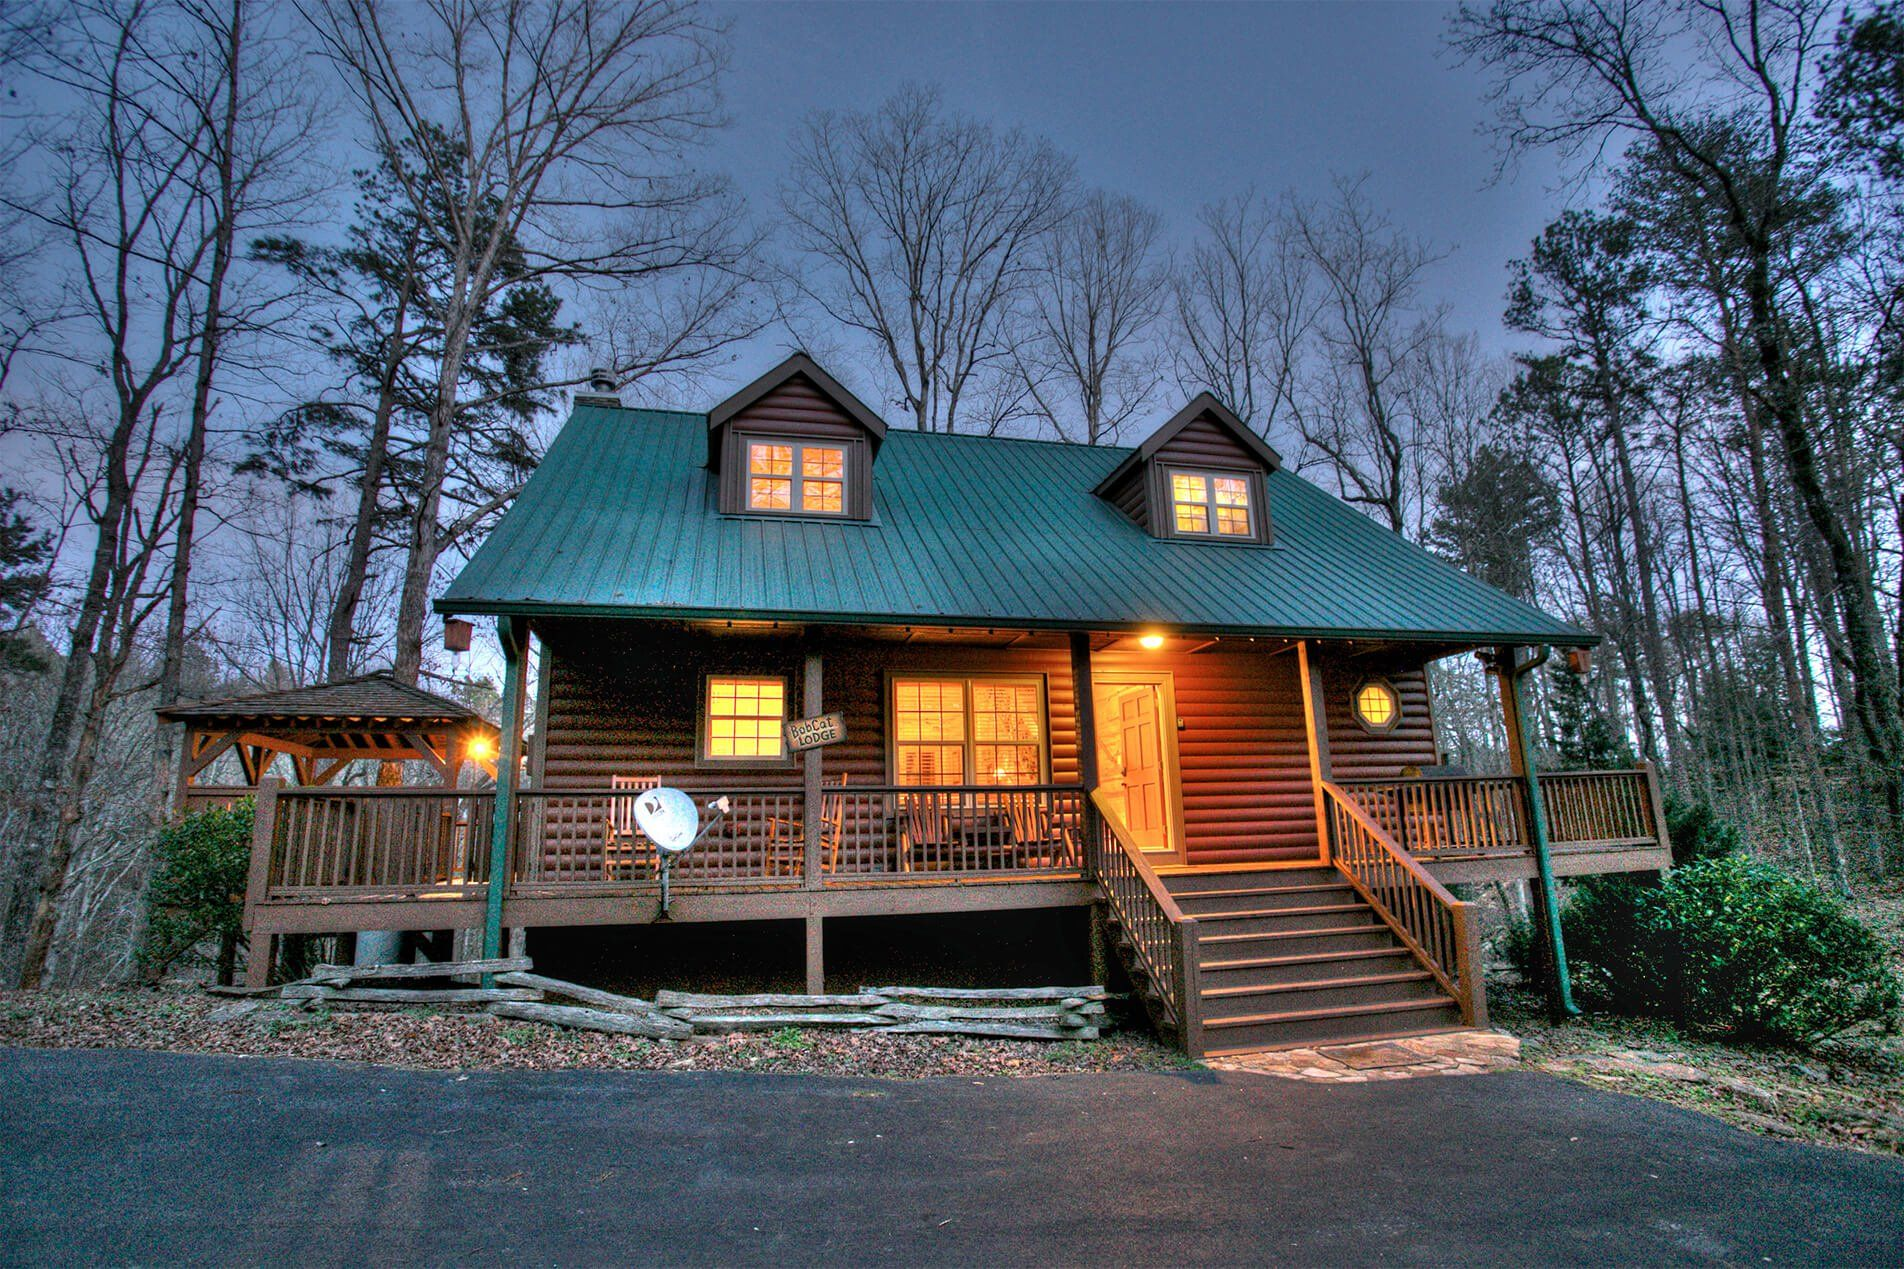 friendly rentals info helen near mountain ga interior pet onlinechange rental vrbo cabins cabin